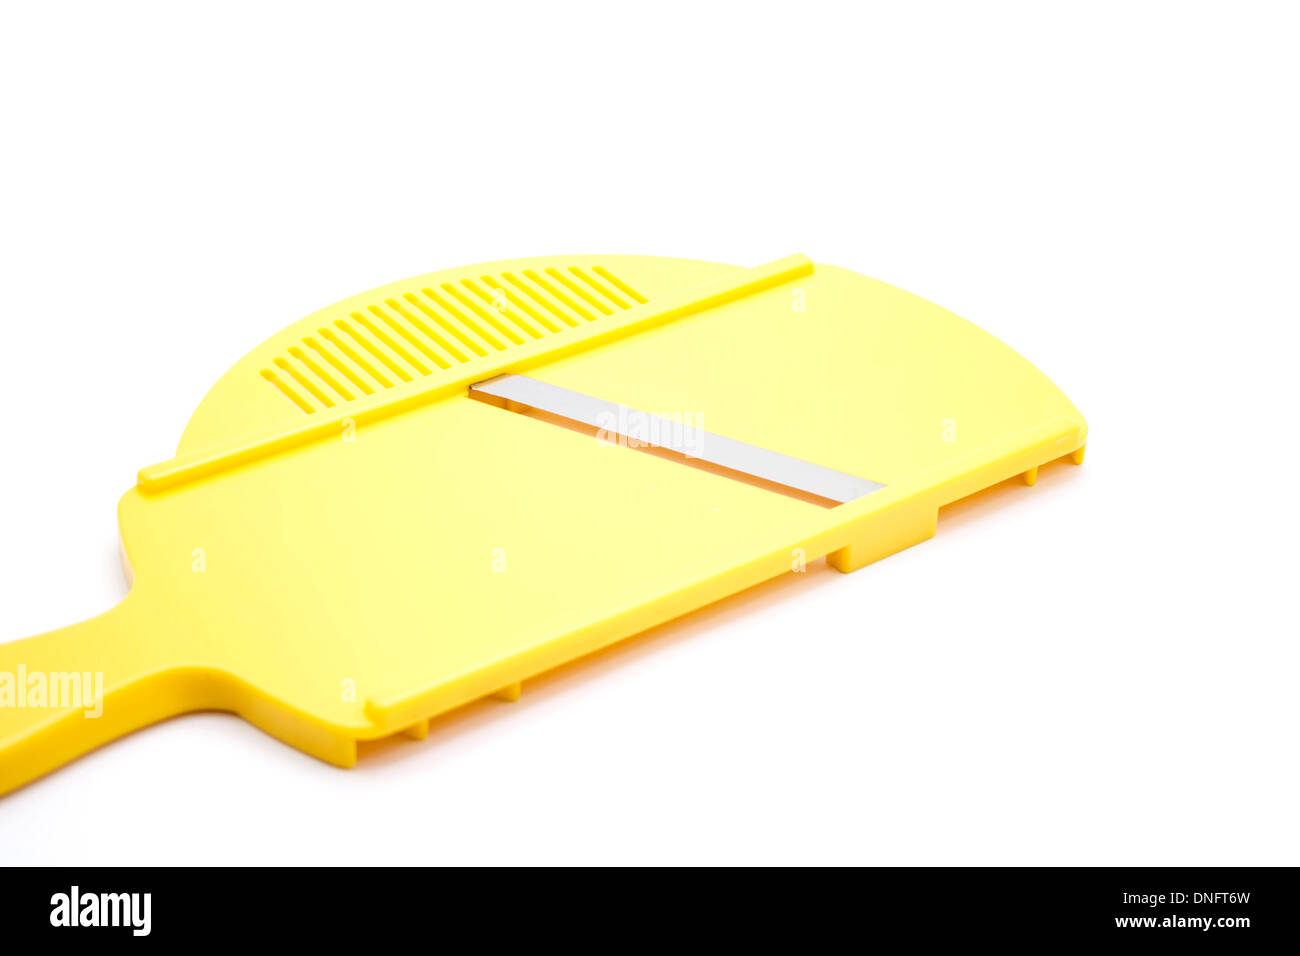 Yellow Kitchen Grater - Stock Image